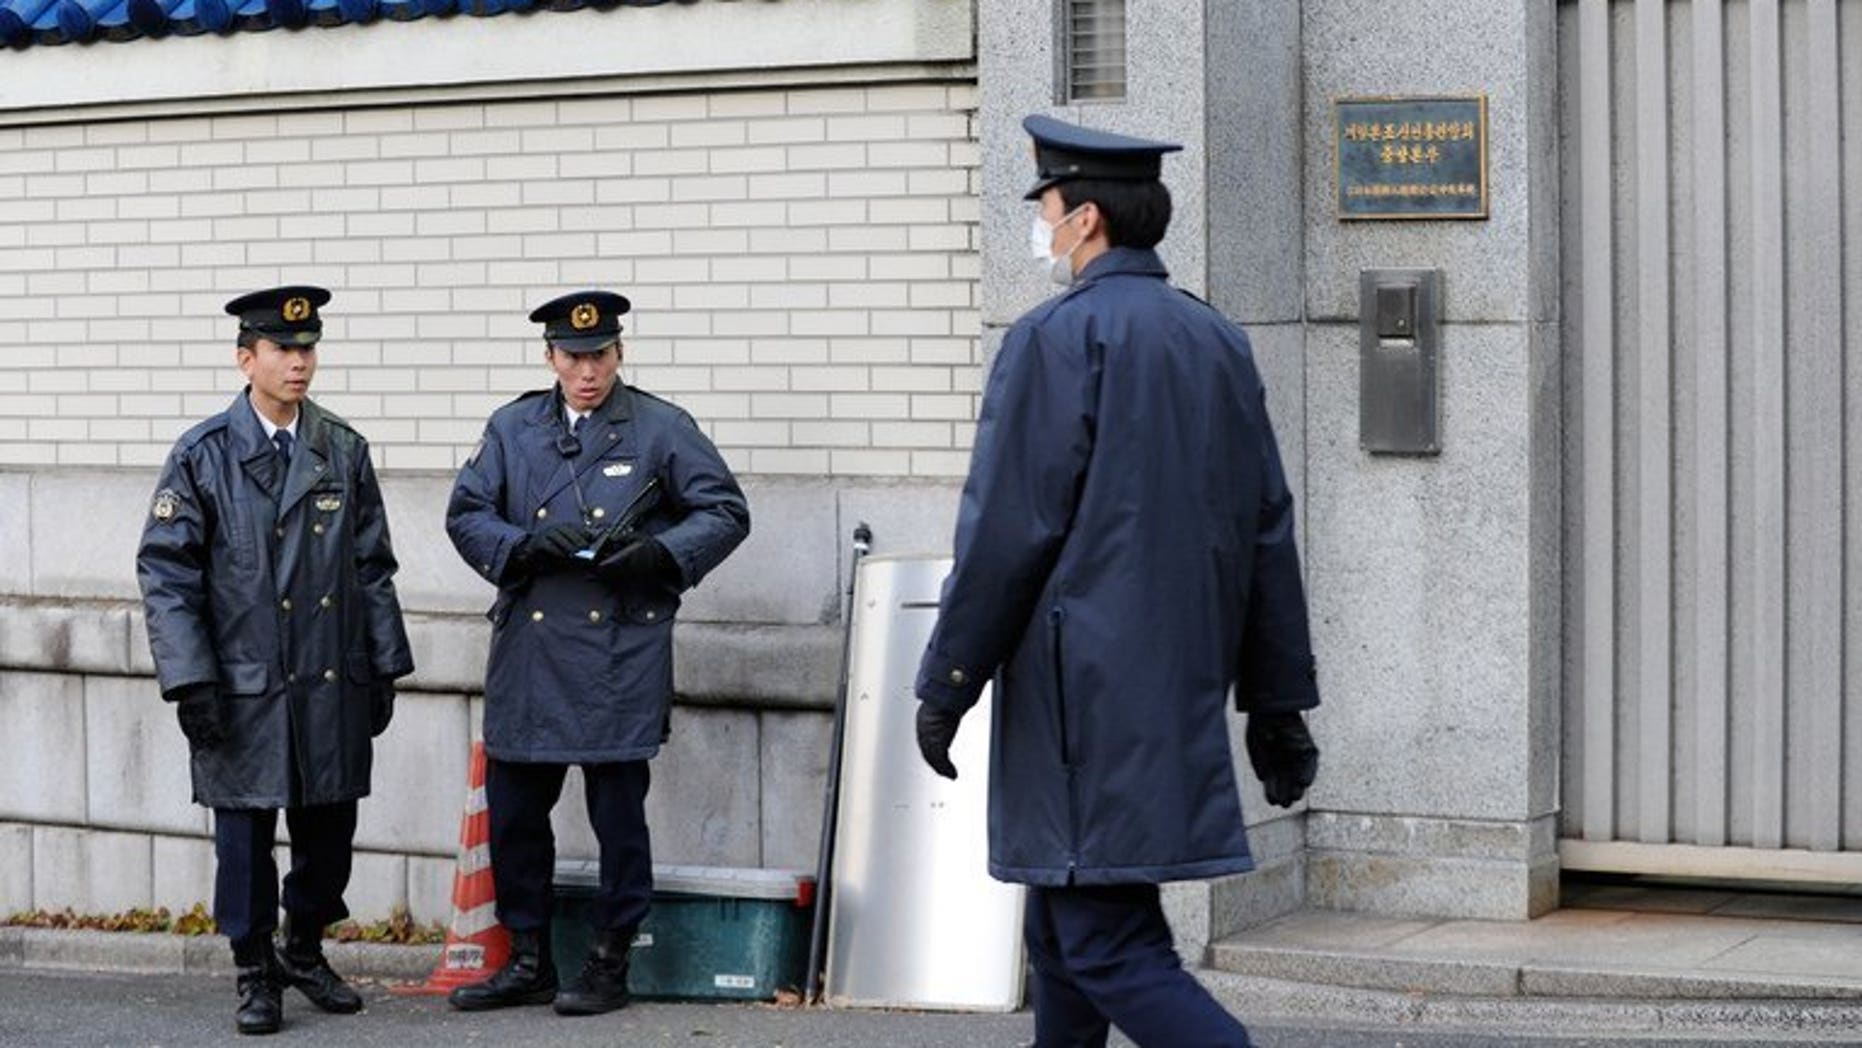 File picture shows policemen in Tokyo on December 19, 2011. Seven people who allegedly dissolved the body of a gigolo-club owner using chemicals found in drain cleaner have been arrested by Japanese police, officials and media reports said Friday.